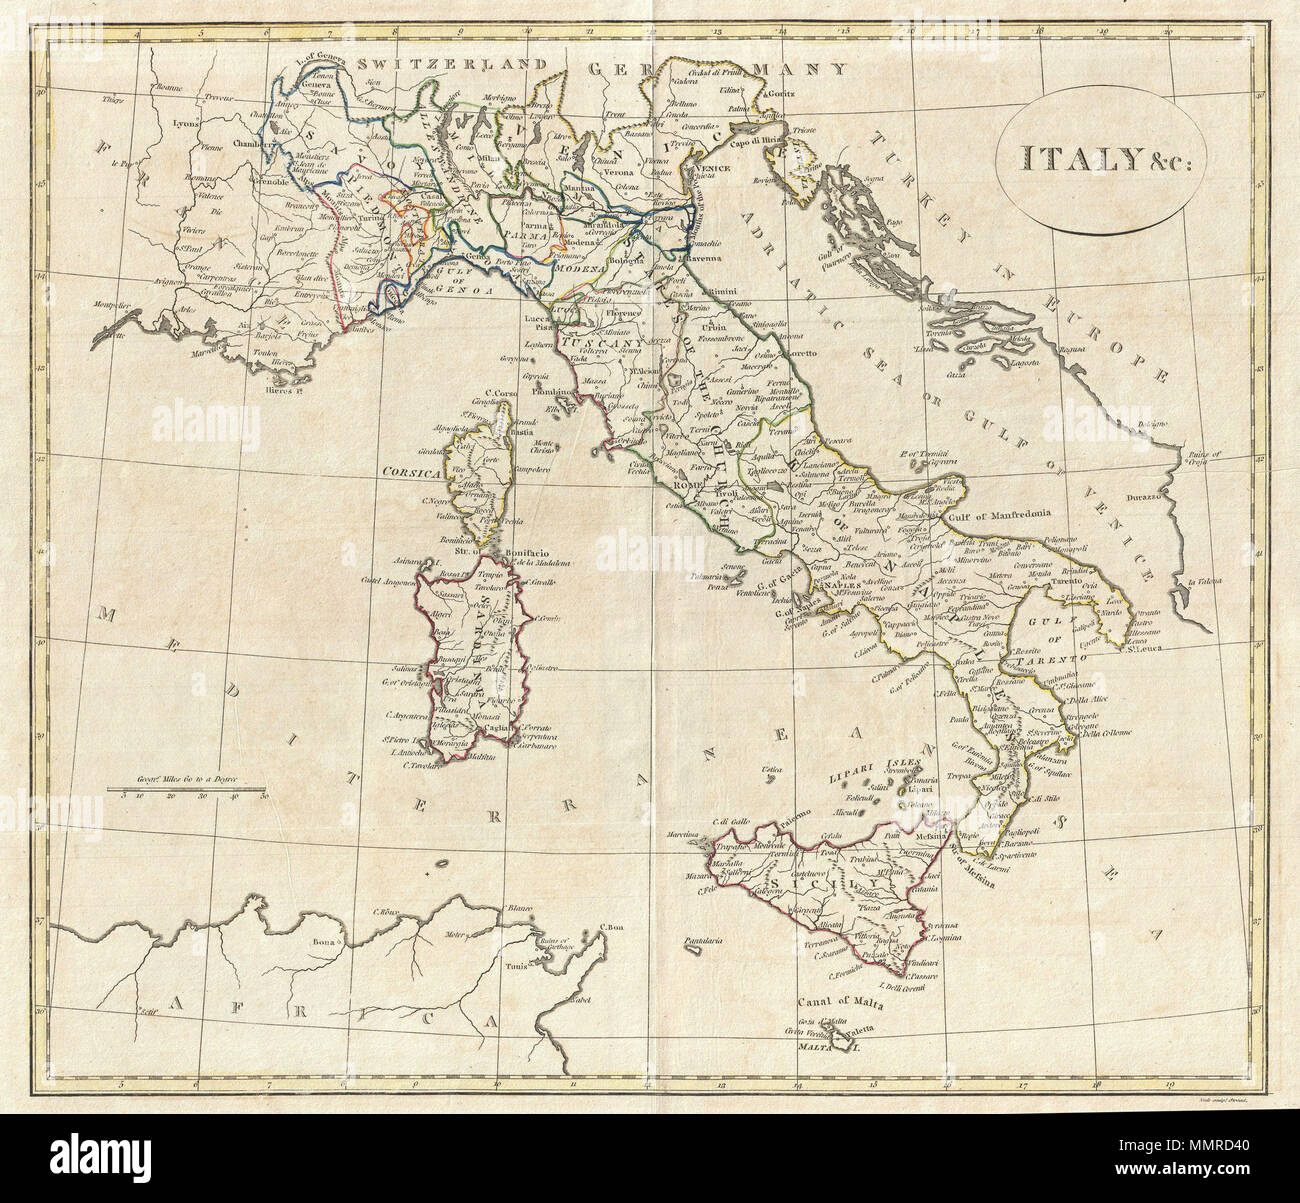 English A Fine 1799 Map Of Italy By The English Map Publisher